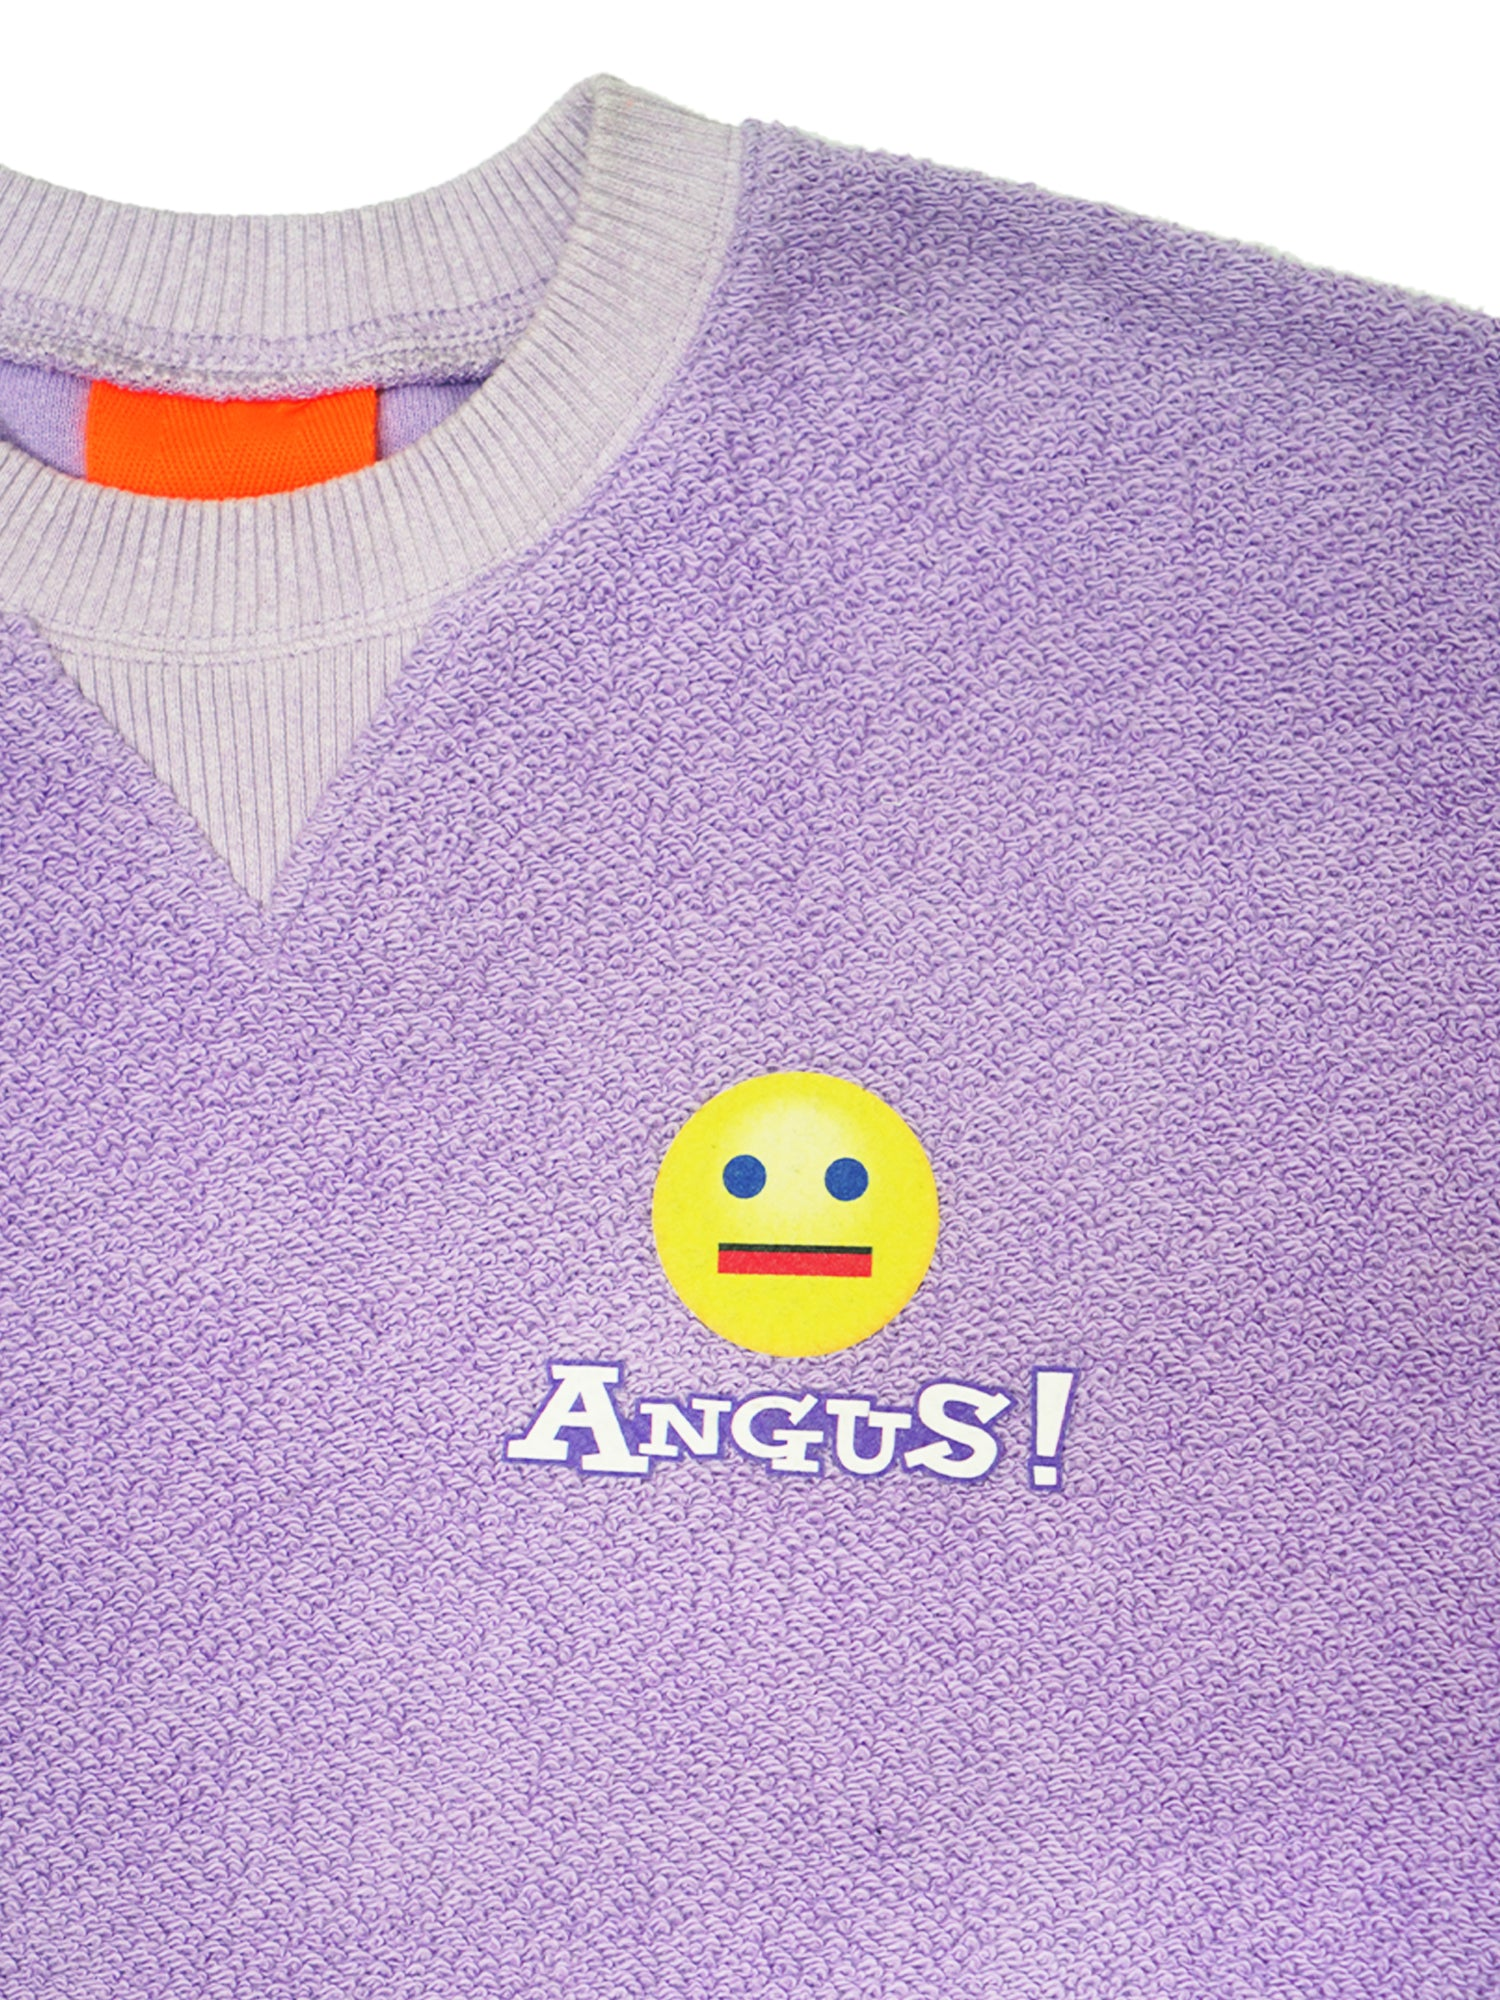 ANGUS! LONG-SLEEVE SWEATER